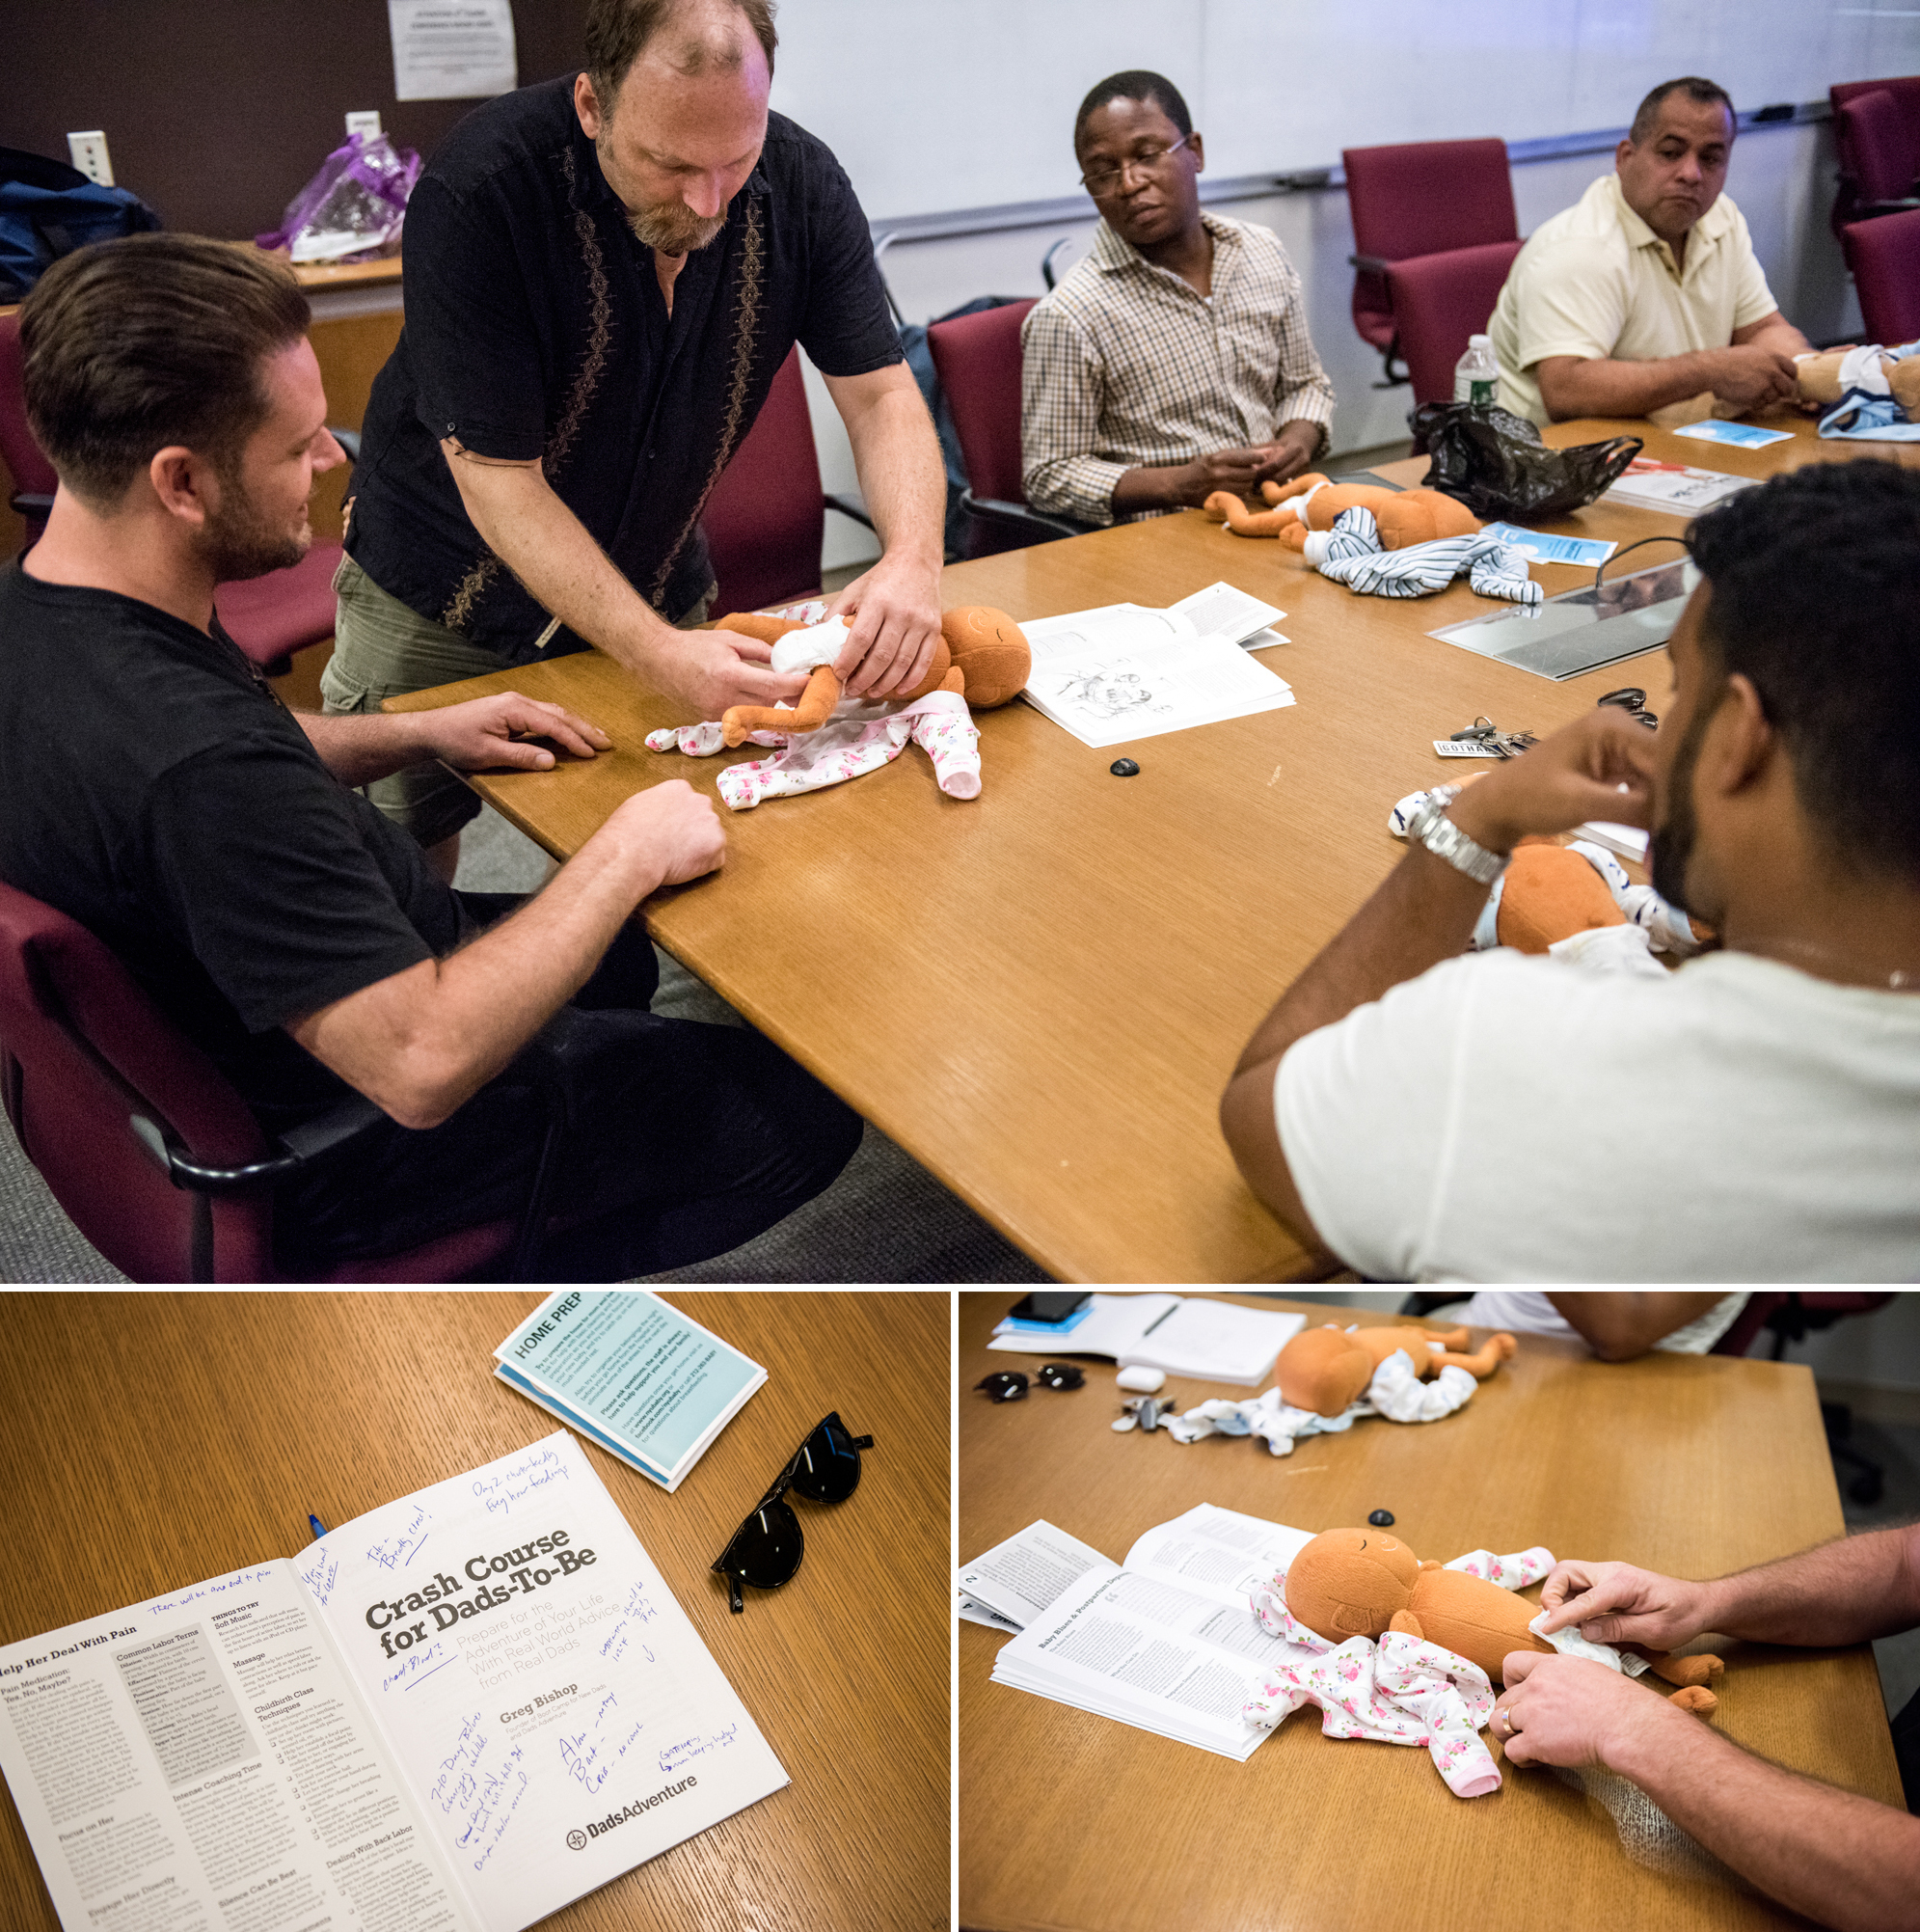 Dads-to-be learn how to change diapers in the workshop for and by men, at the New York Langone Medical Center. Participants say they appreciate the combination of concrete skills and candid advice from other fathers.